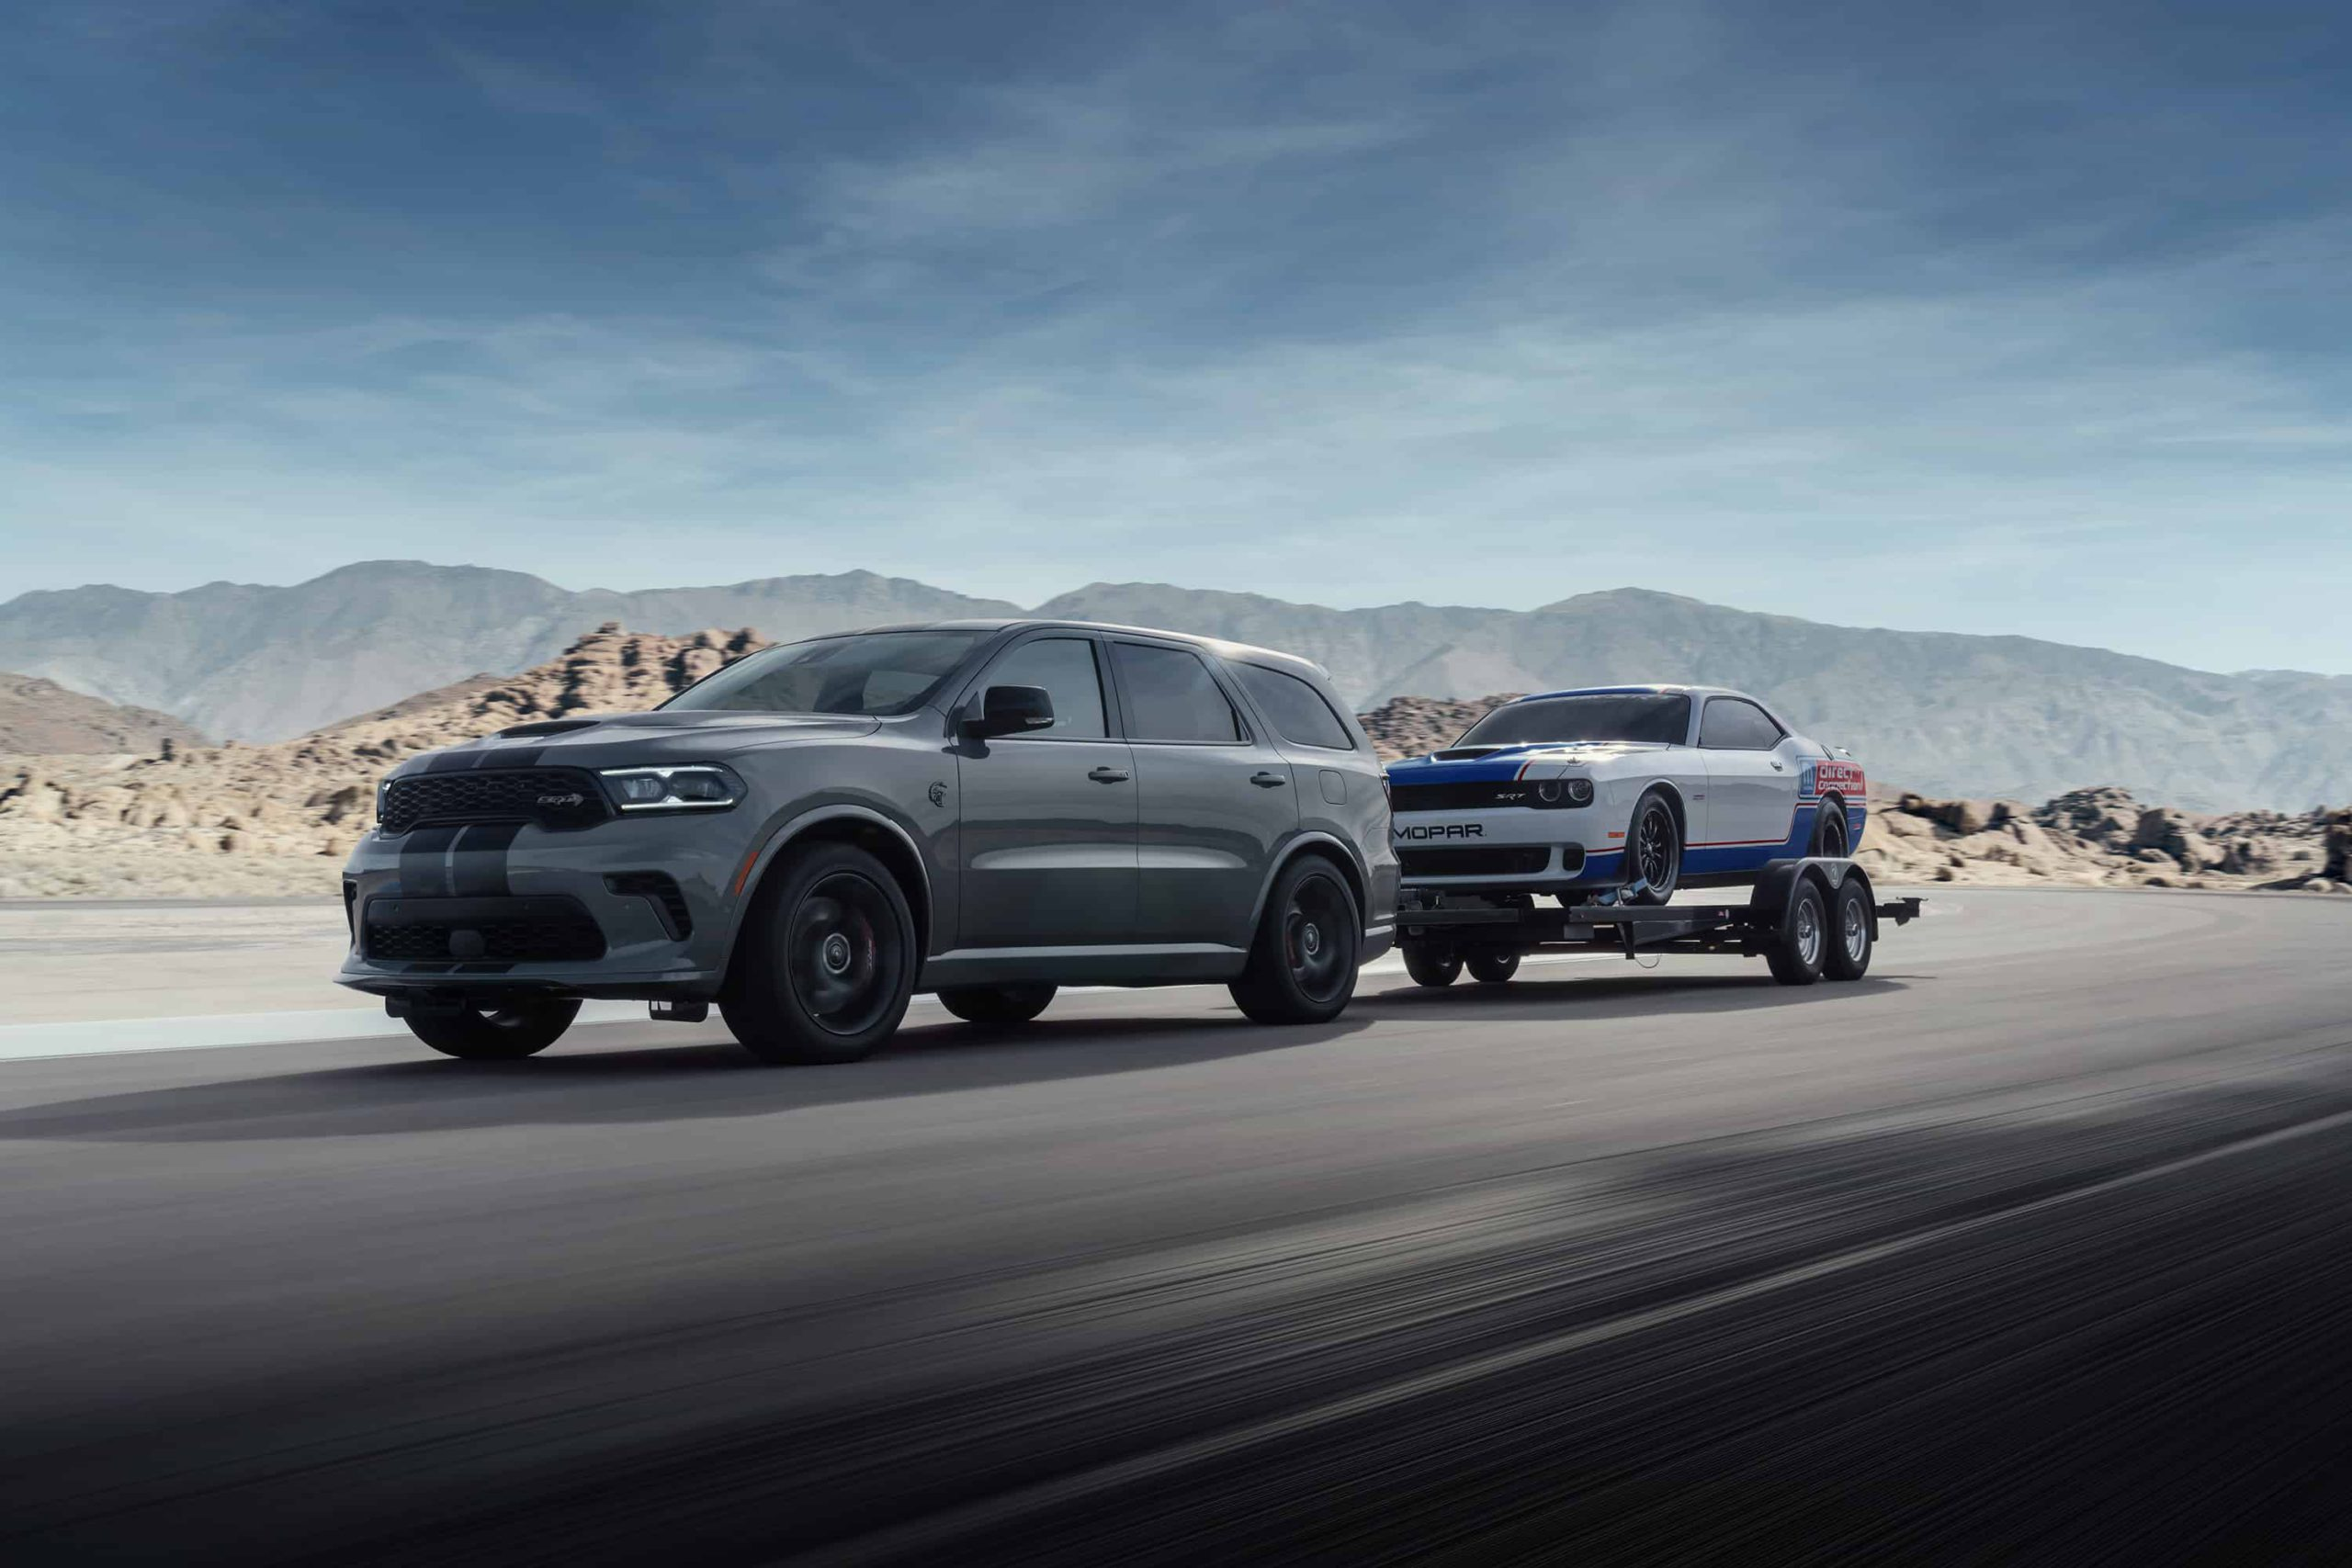 15 Best SUVs For Towing In 2021